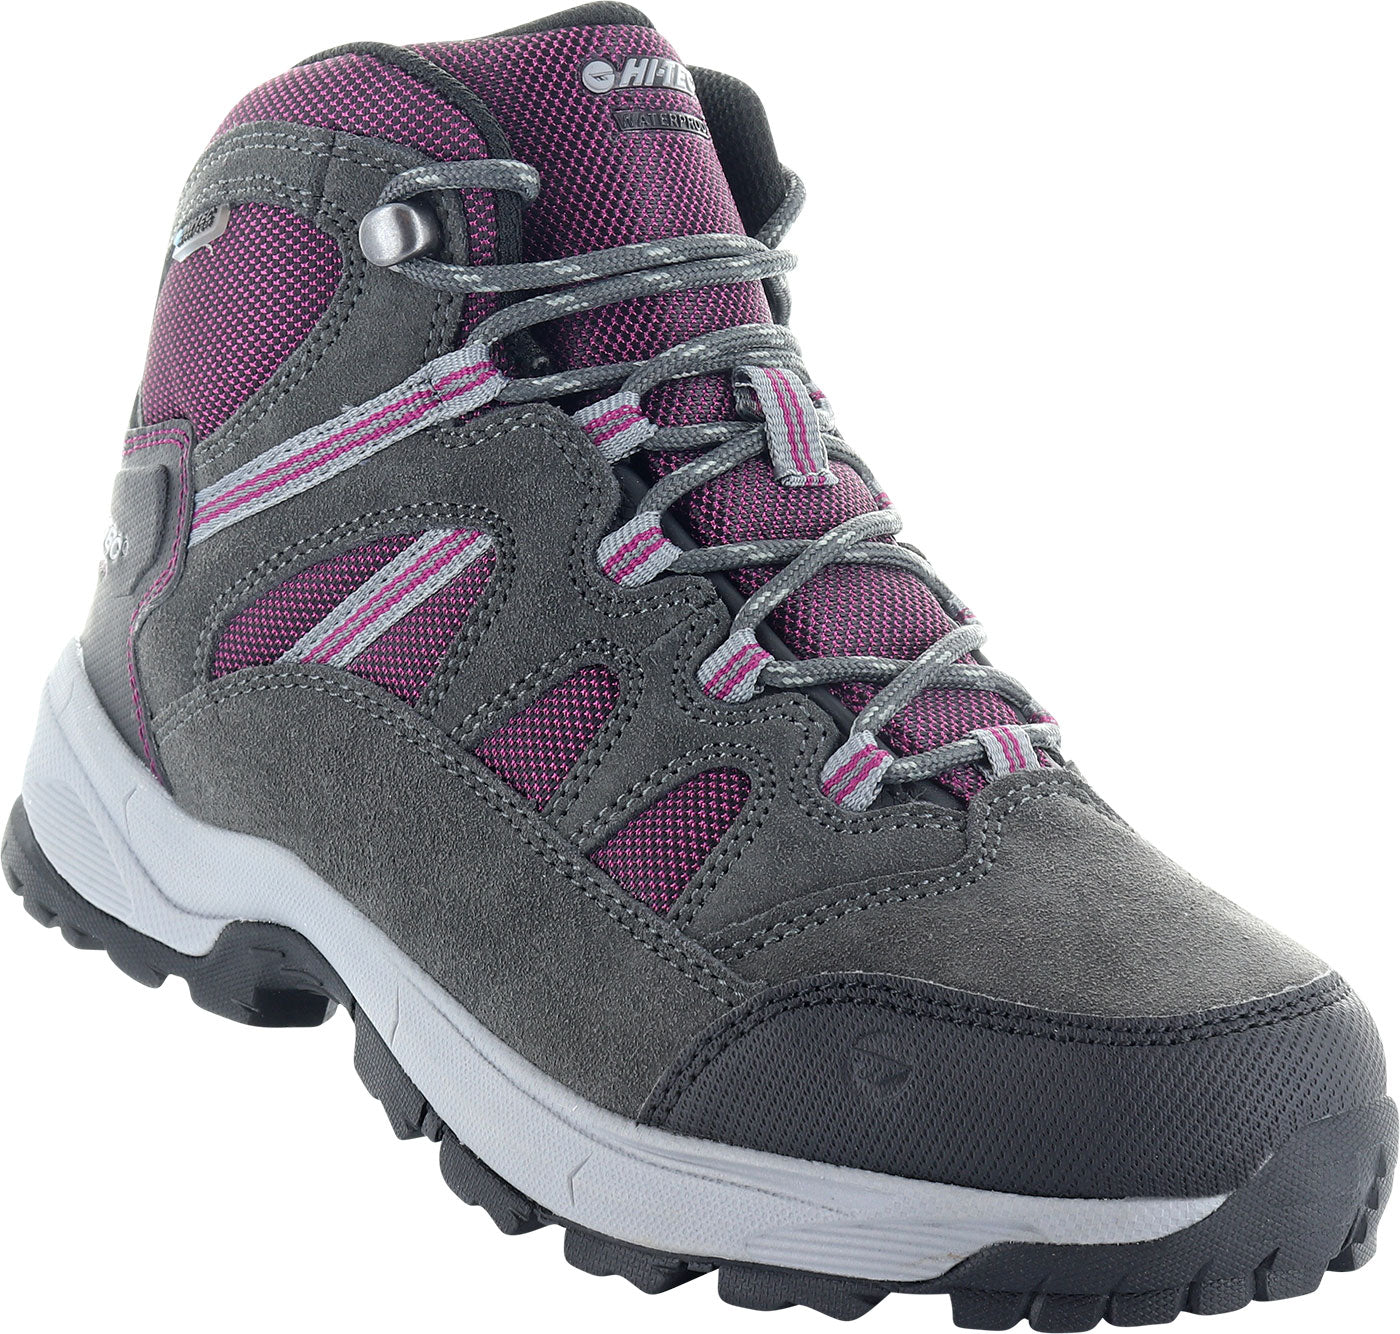 Ladies Bandera Waterproof Hiking Boots by Hi-Tec